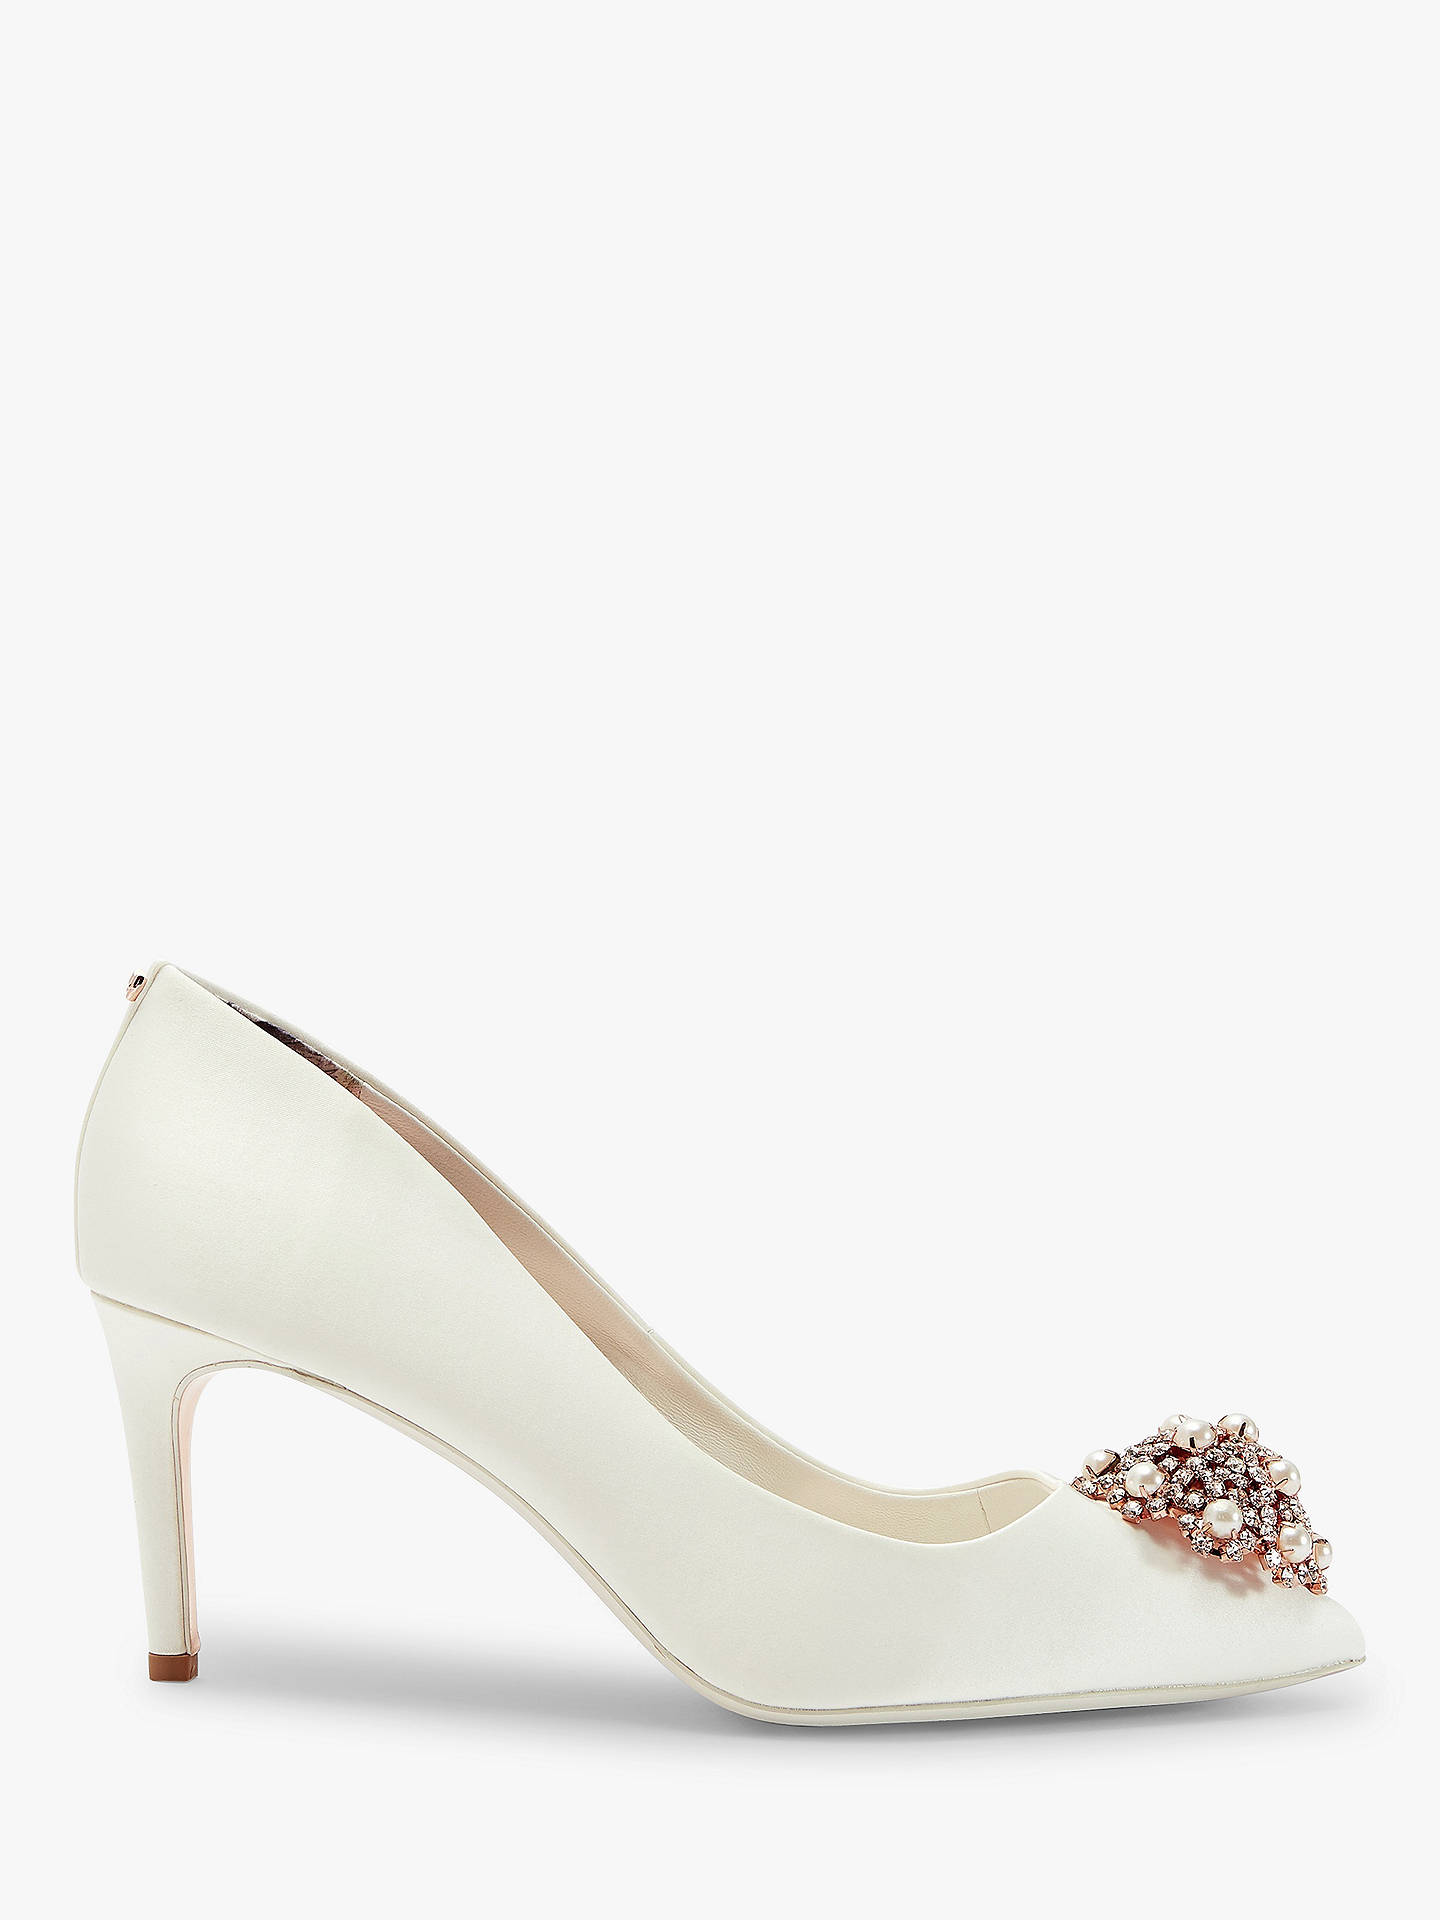 74ee7a8041c3 Ted Baker Dahrlin Embellished Court Shoes at John Lewis   Partners